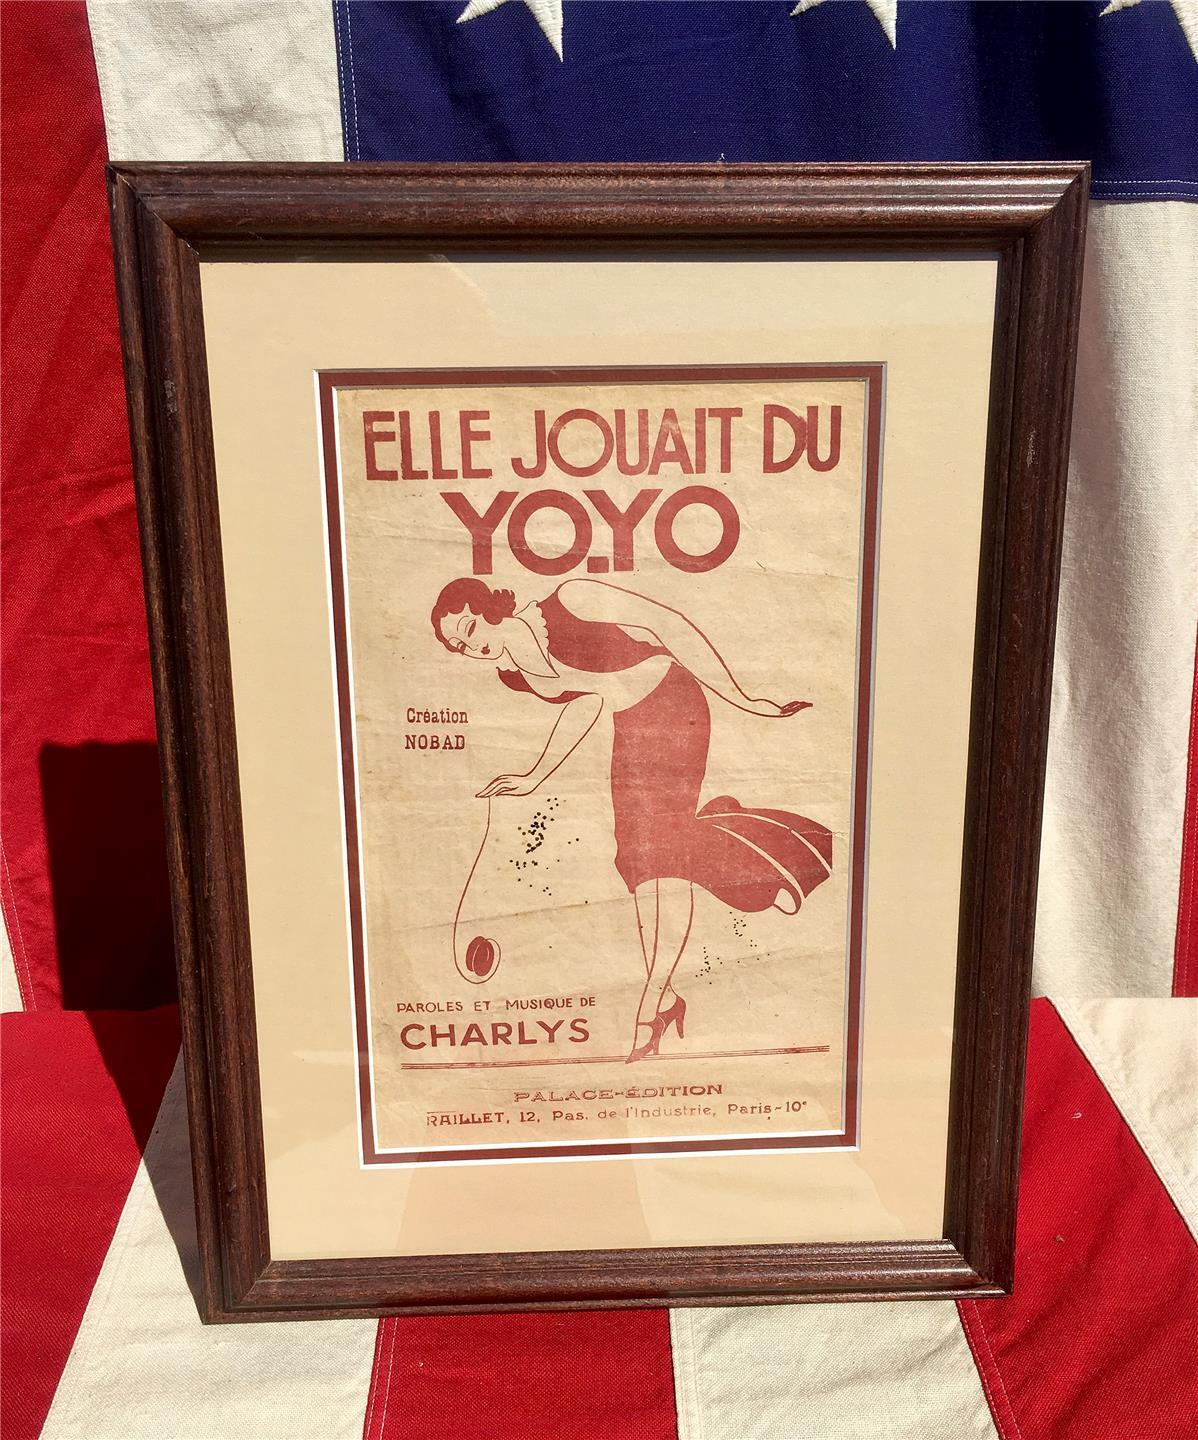 Vintage Antique Elle Jouait Du YO-YO Sheet Music Book French Framed Great Cover